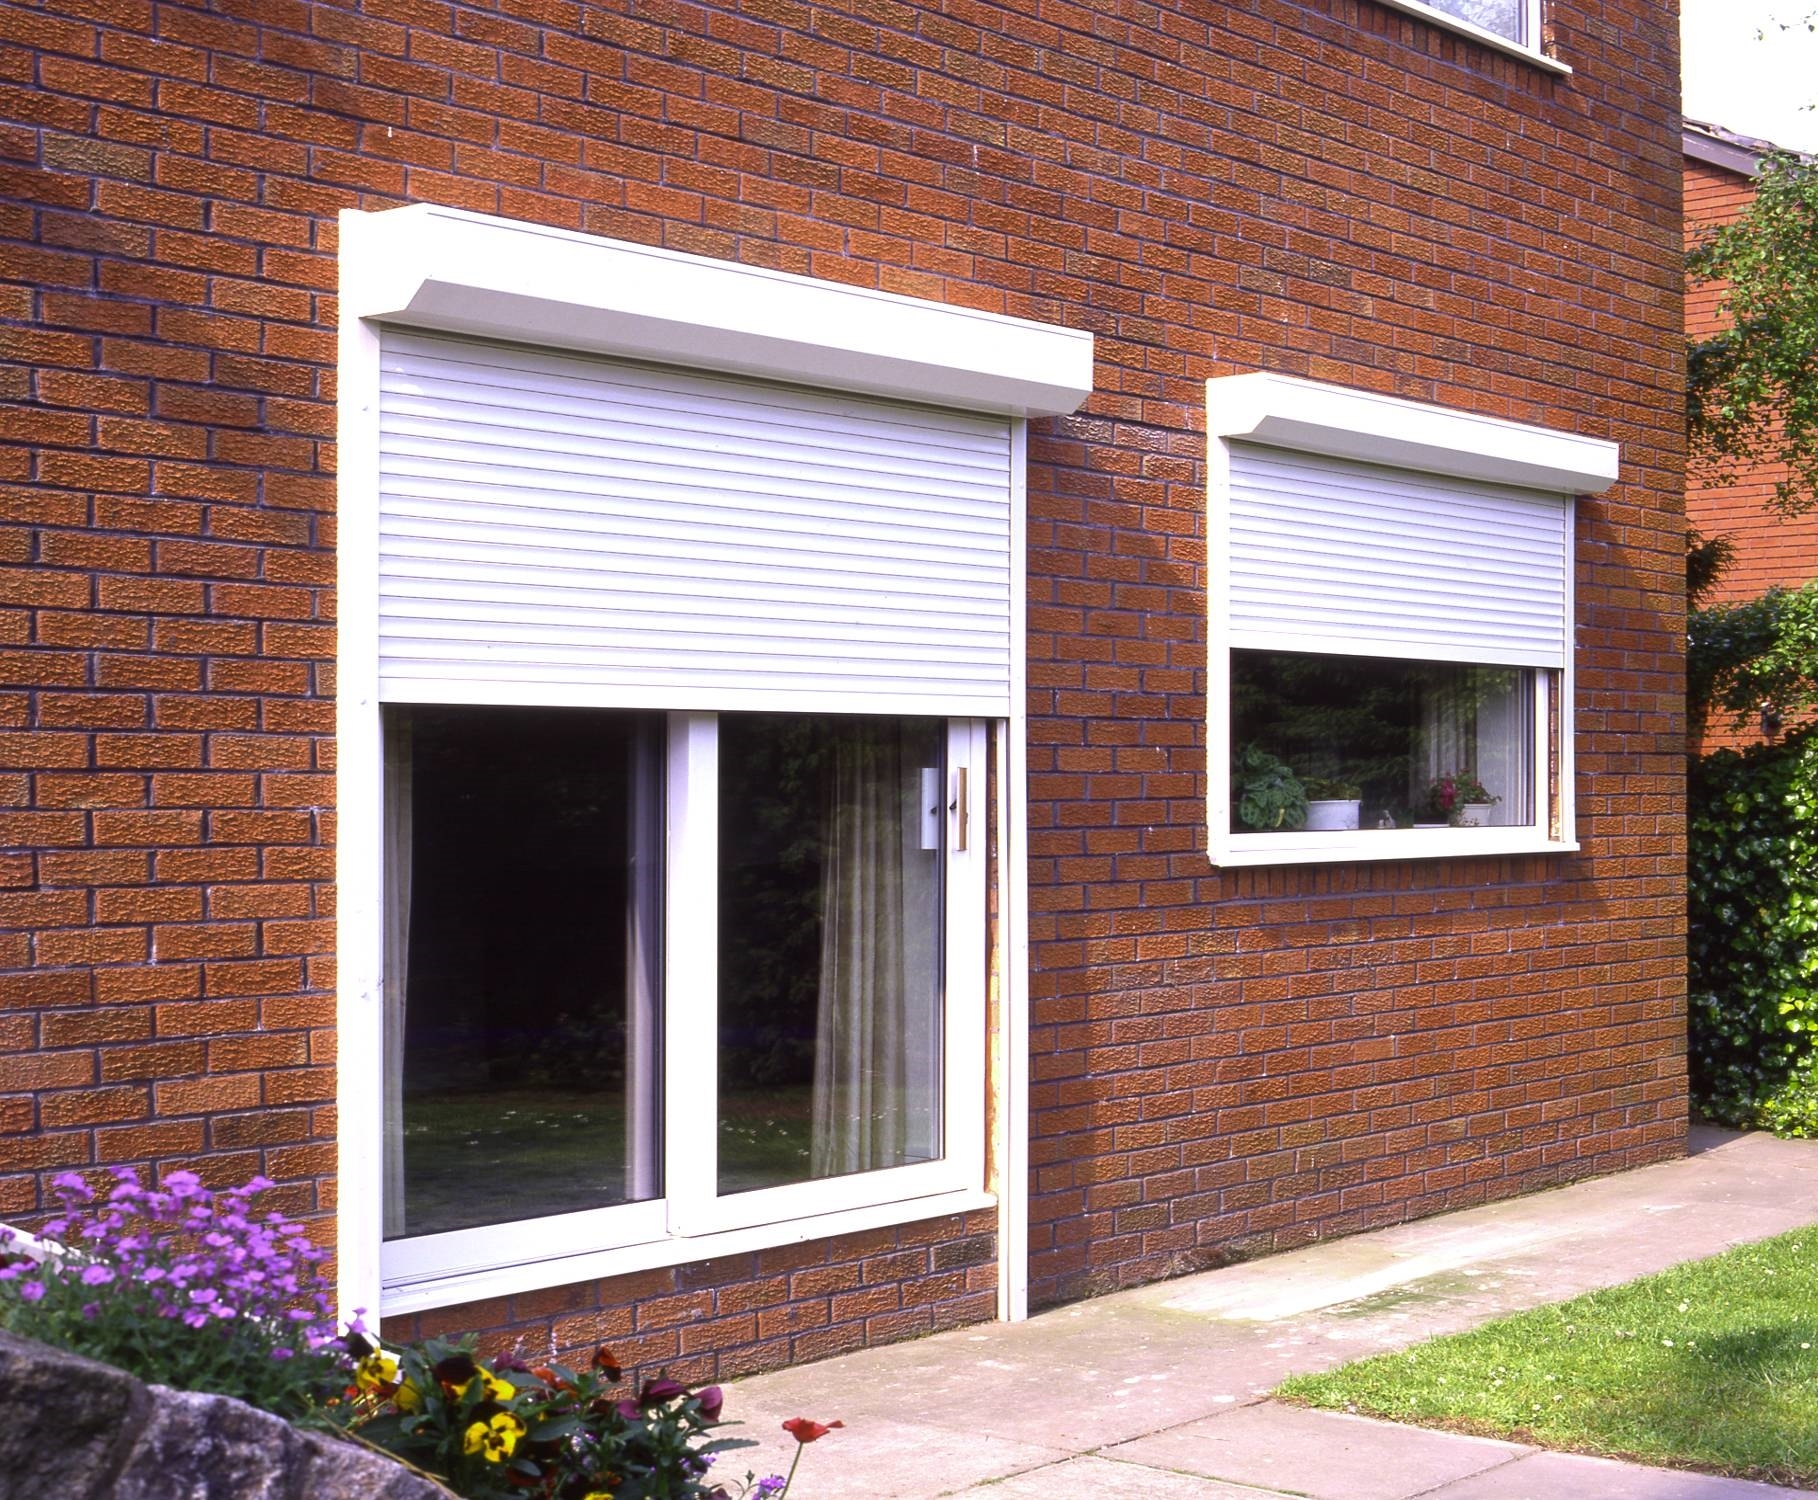 Modern exterior window shutters suitable for brick wall house